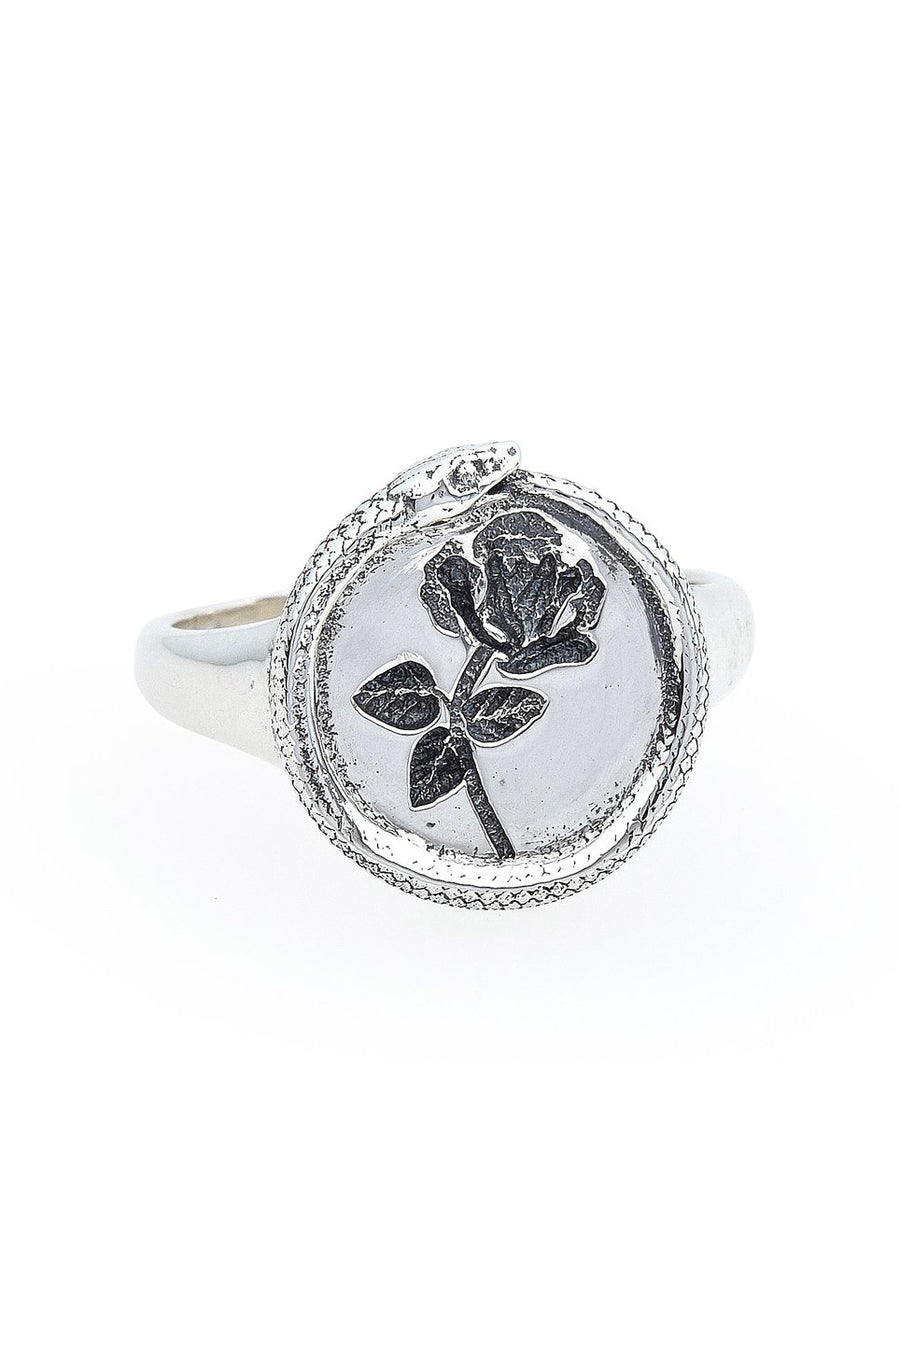 Rose Ouroboros Signet Ring in Silver